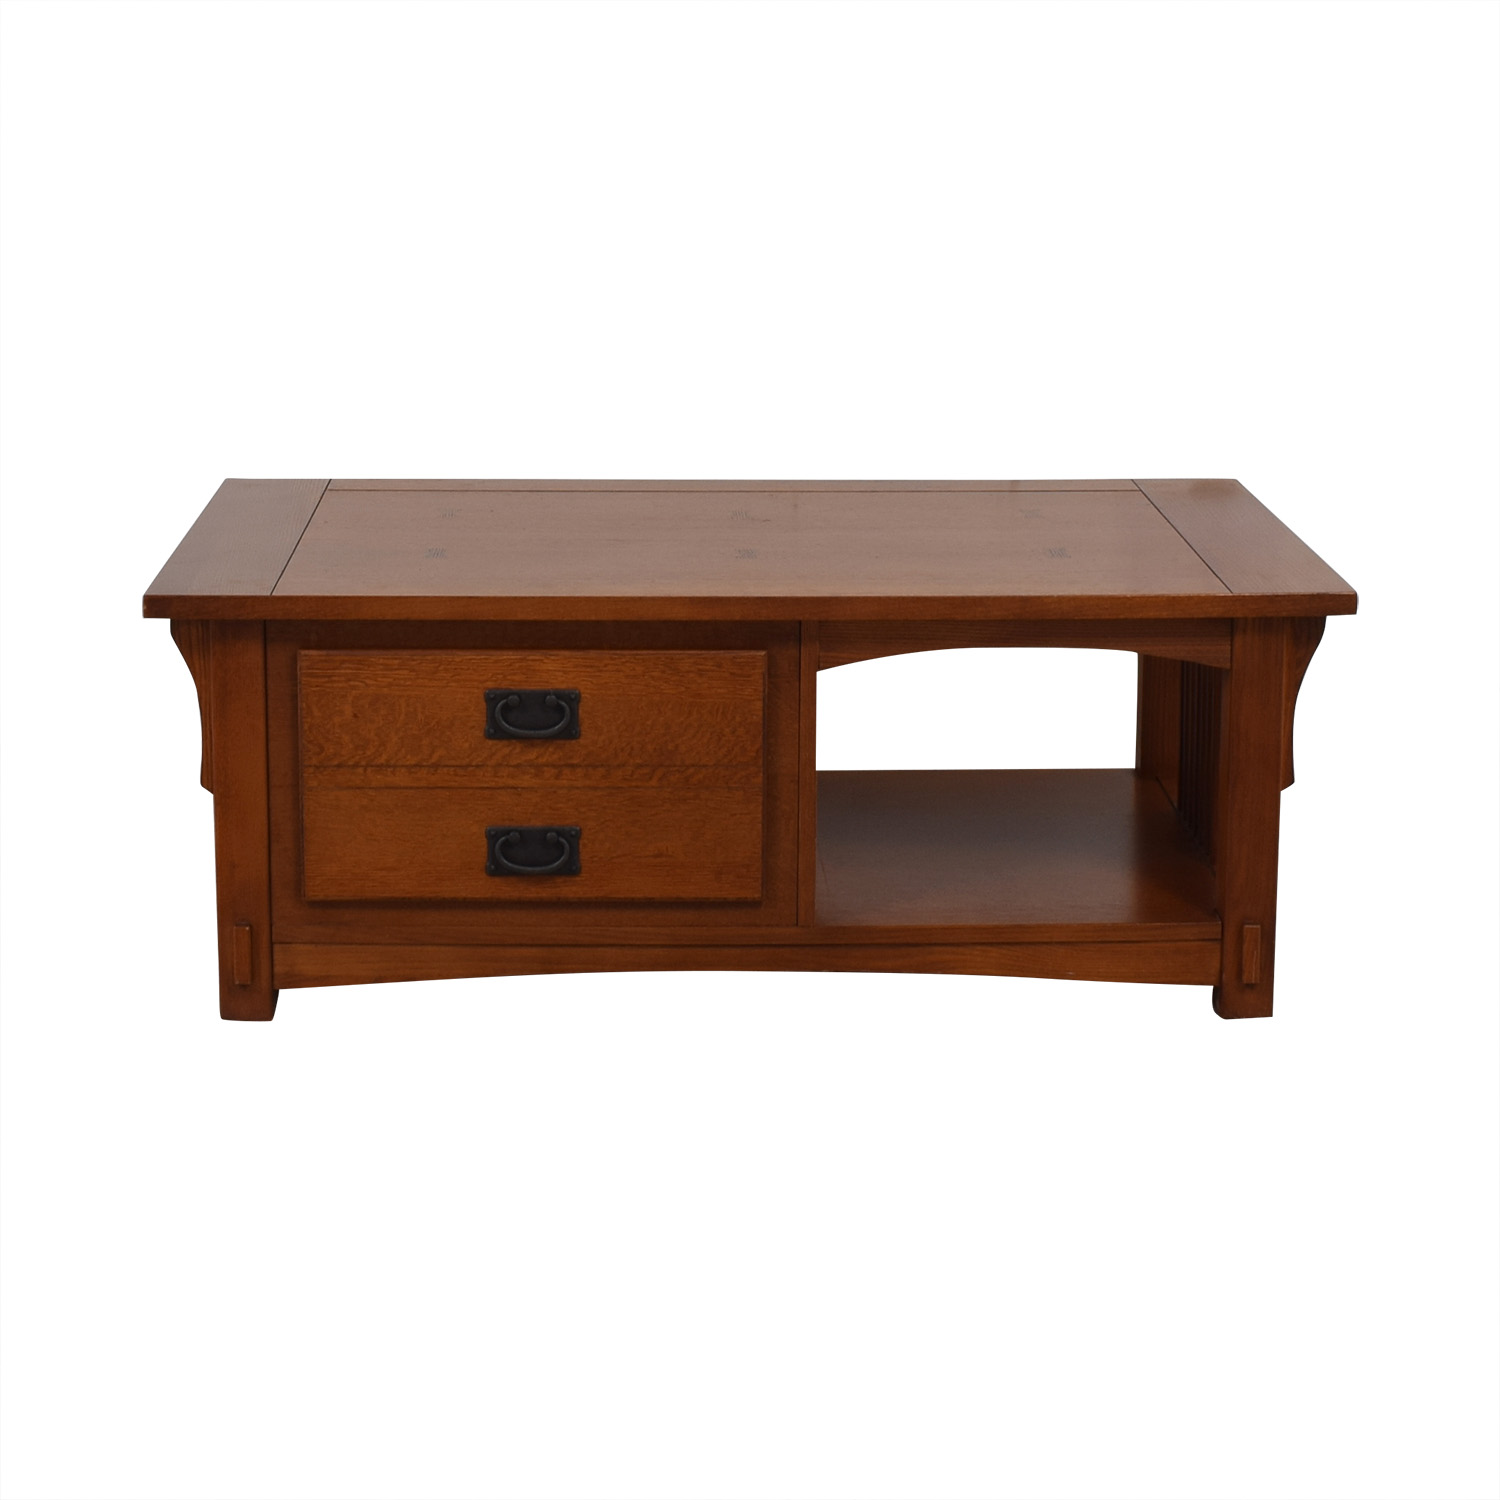 Mission Style Wood Single Drawer Coffee Table second hand